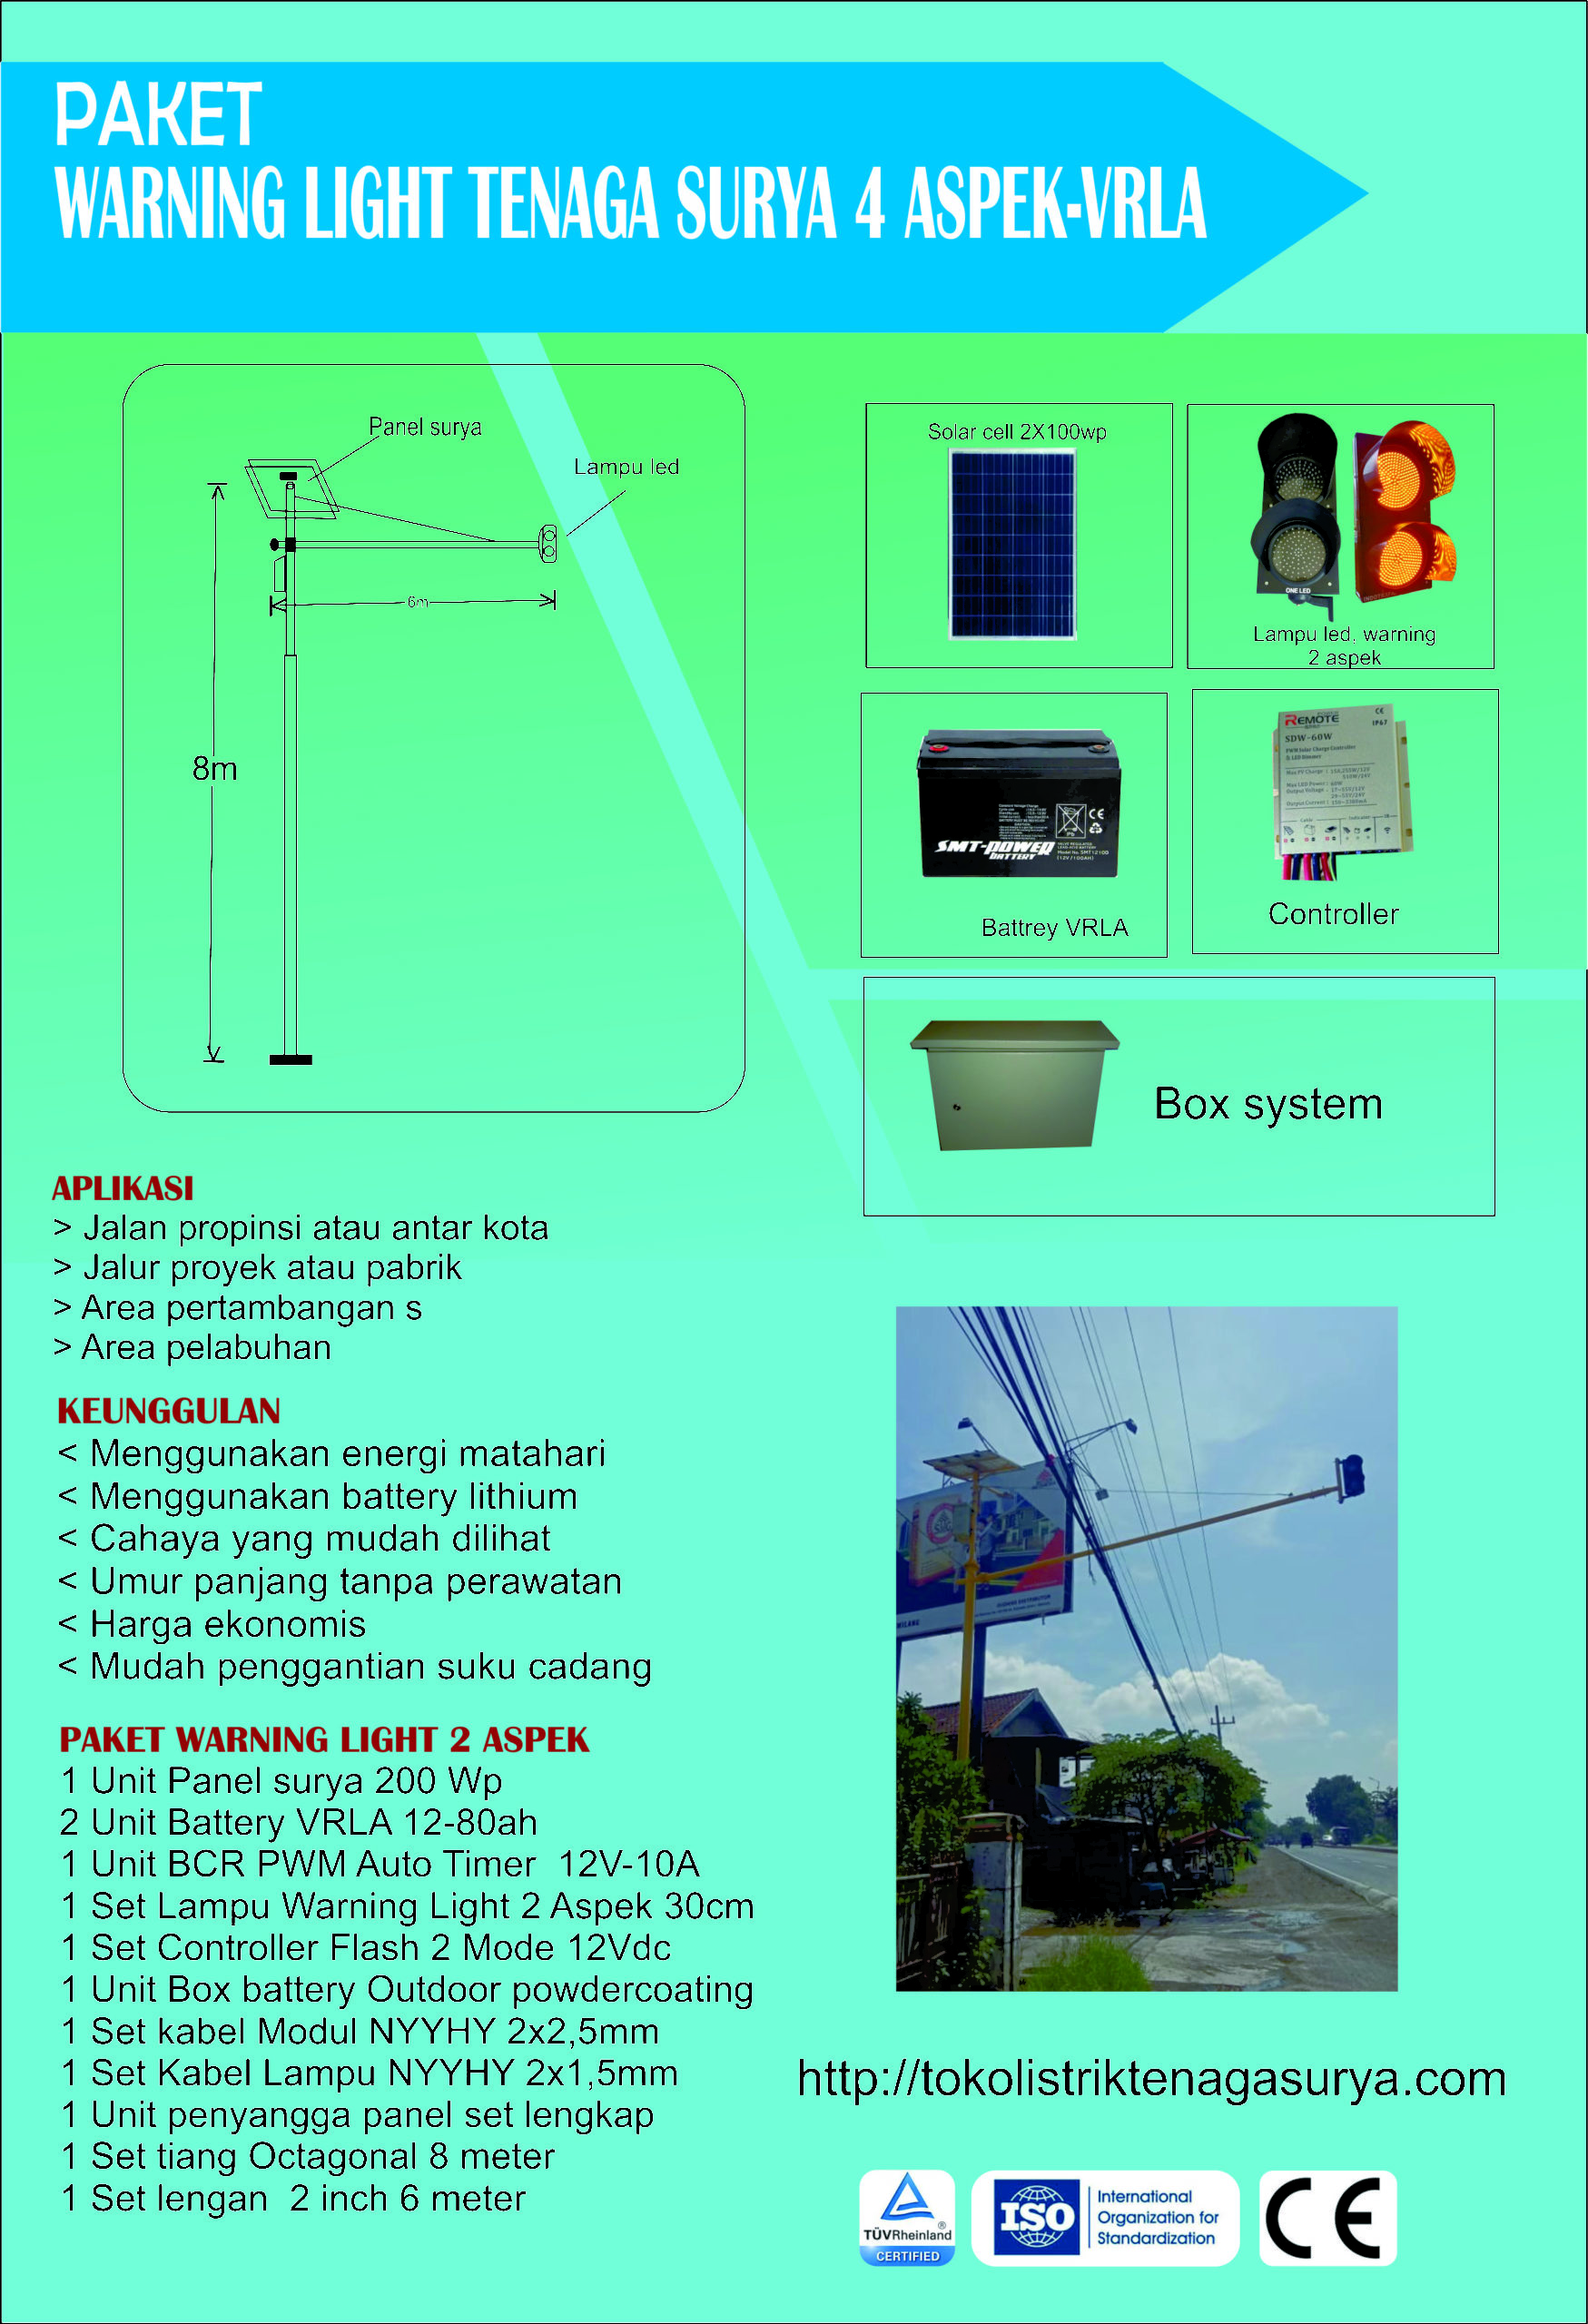 PAKET LAMPU WARNING LIGHT TENAGA SURYA 2 ASPEK | VRLA